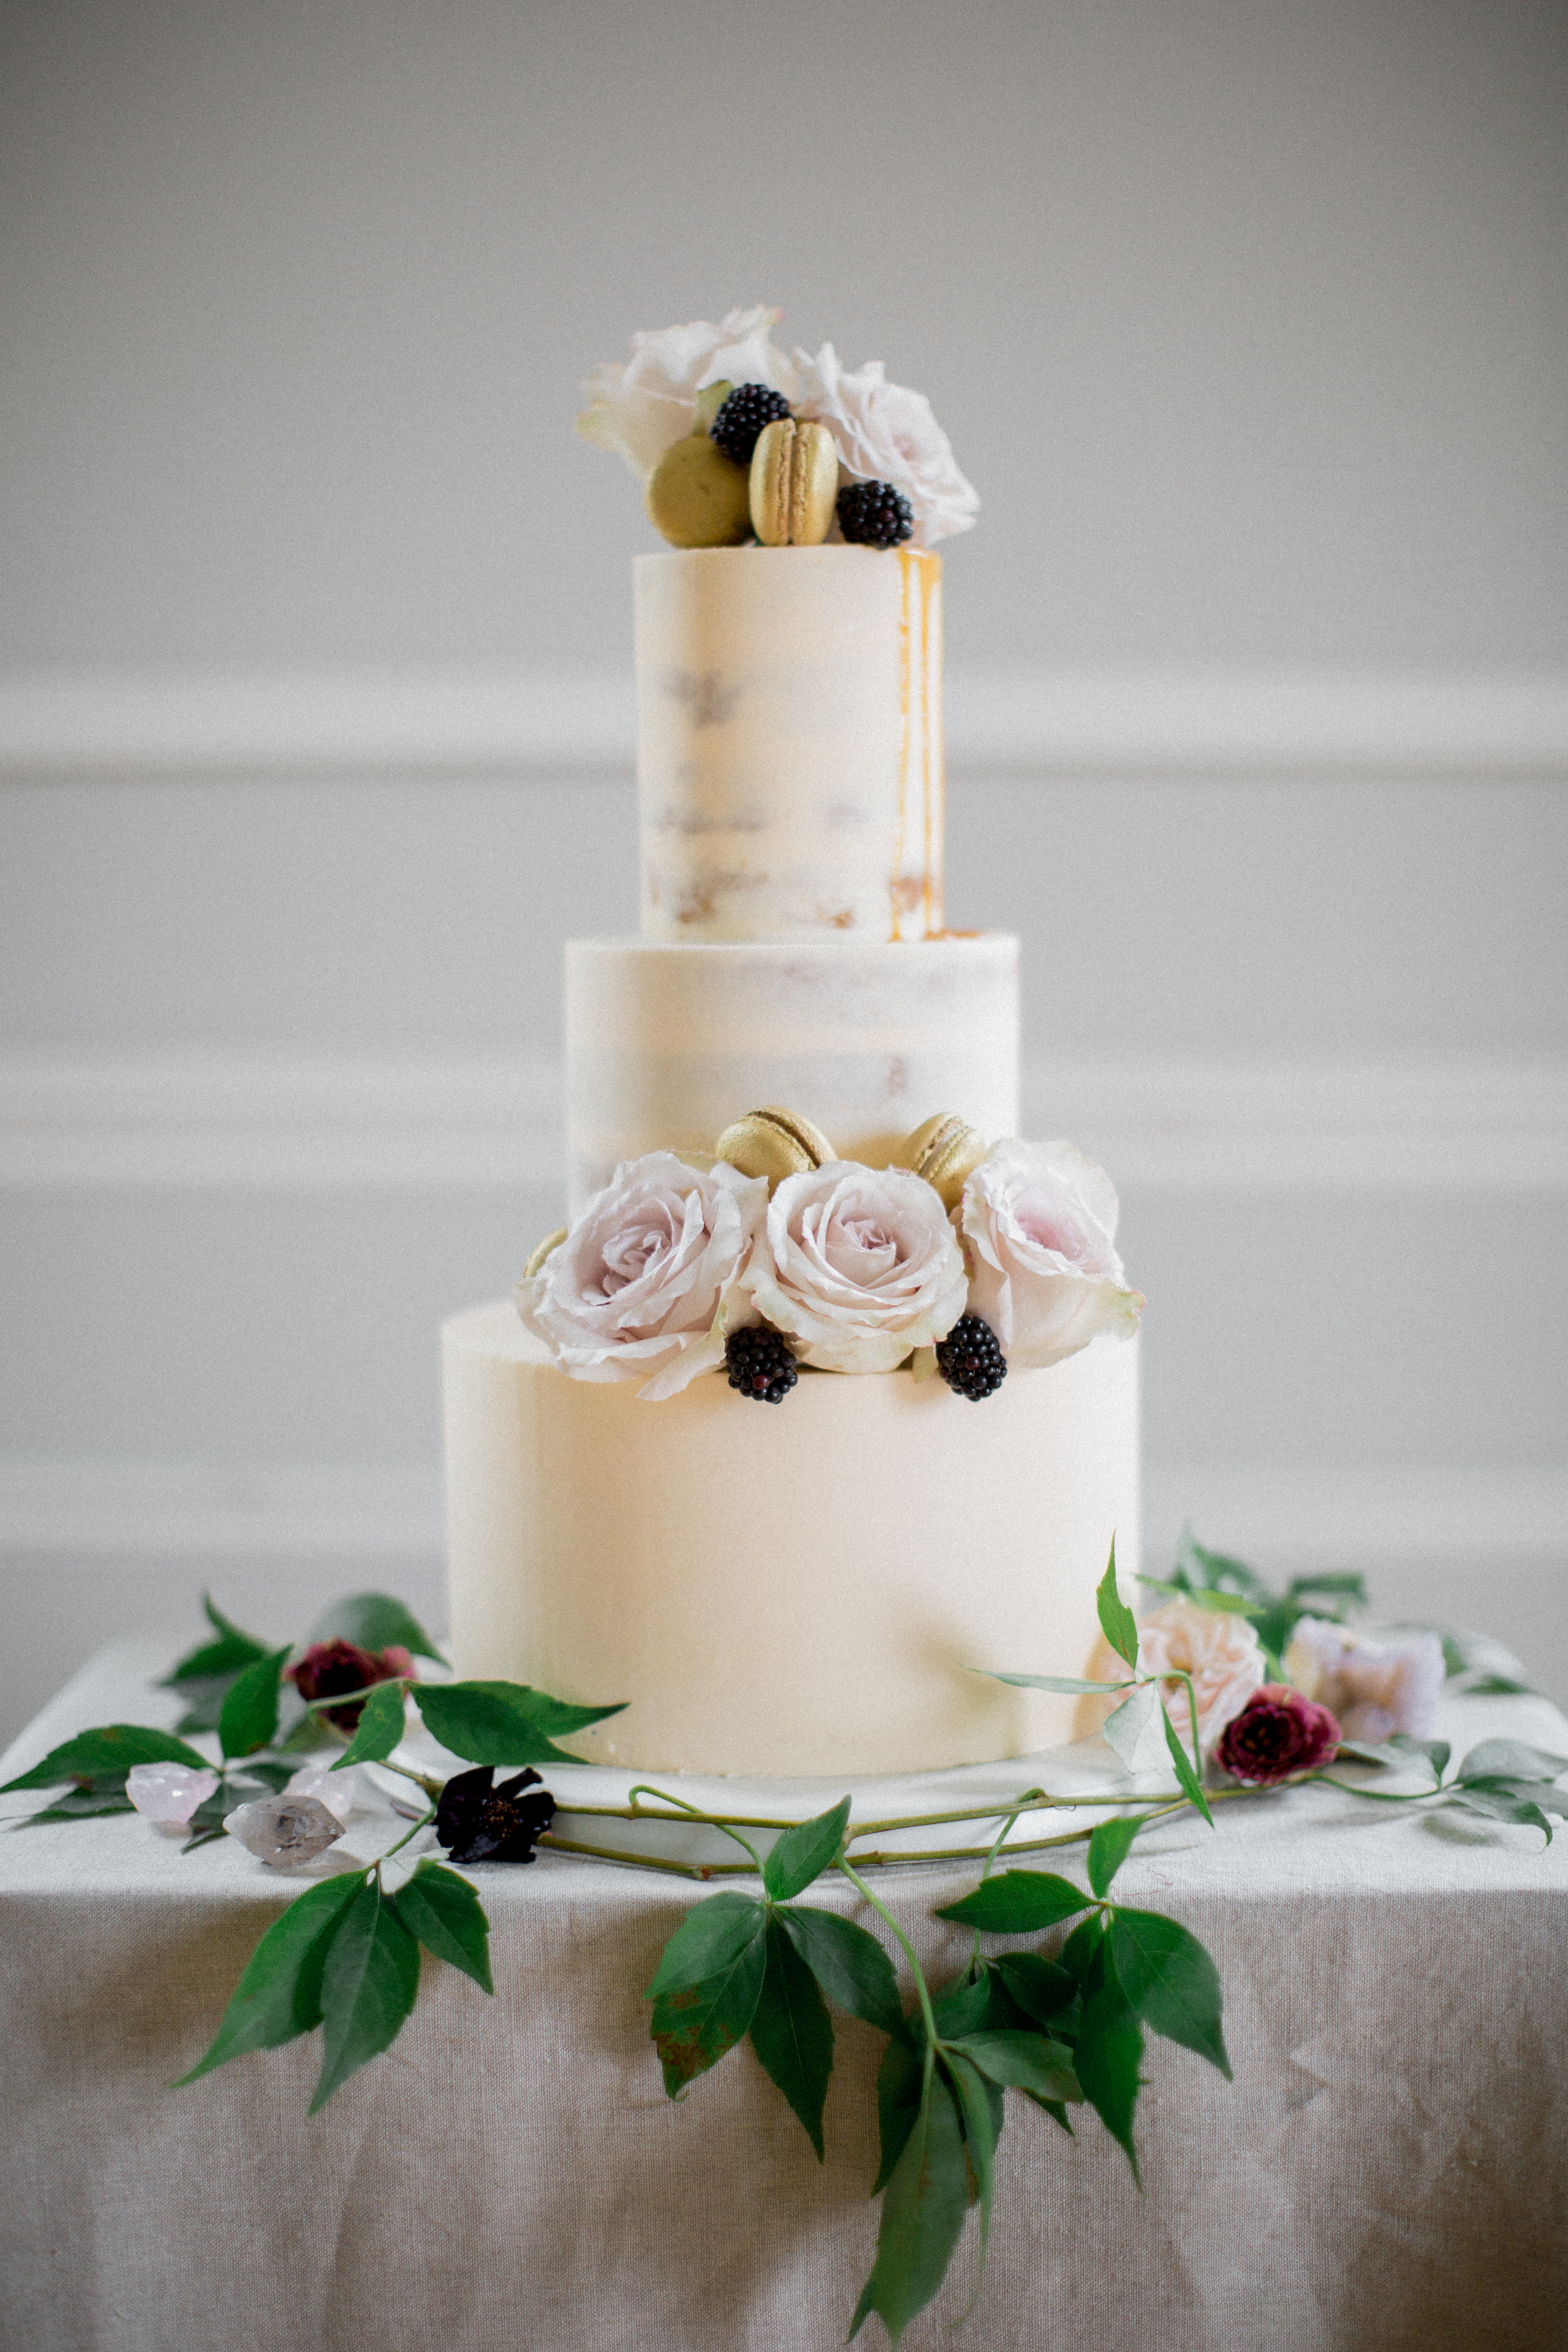 Cove Cake Design // bespoke Wedding Cakes // Dublin